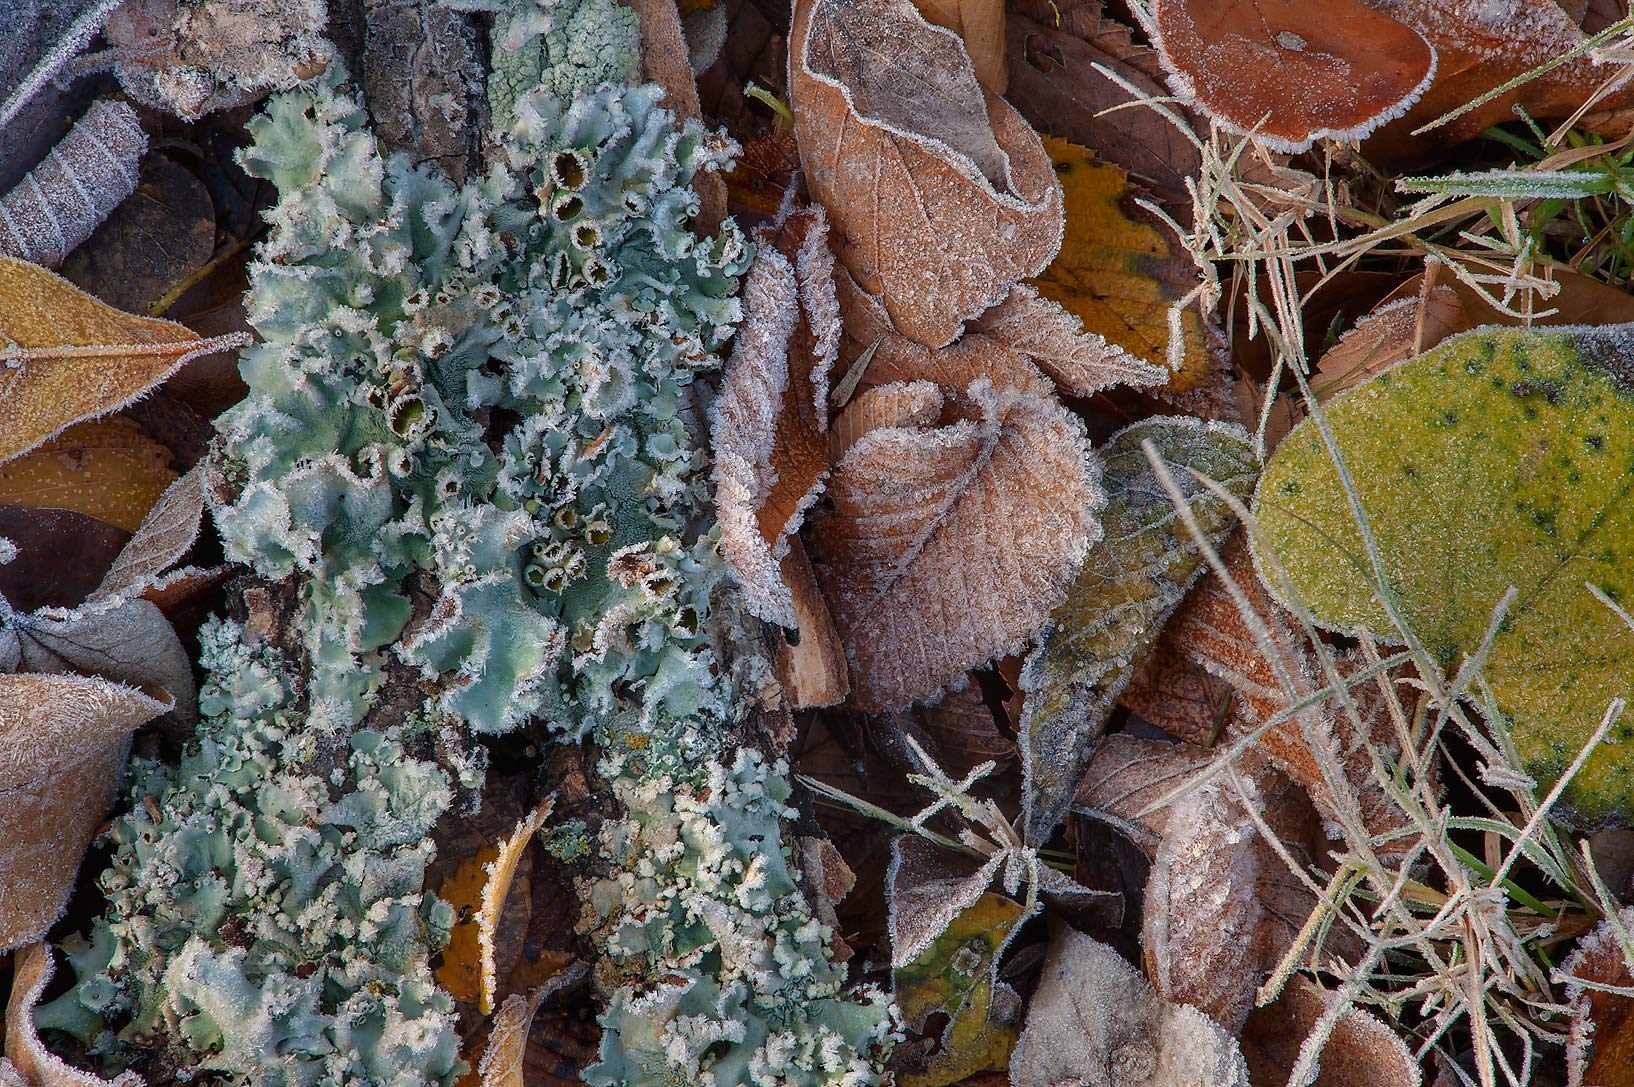 Morning freeze on leaves and lichen of Park Hudson Trail. Bryan, Texas